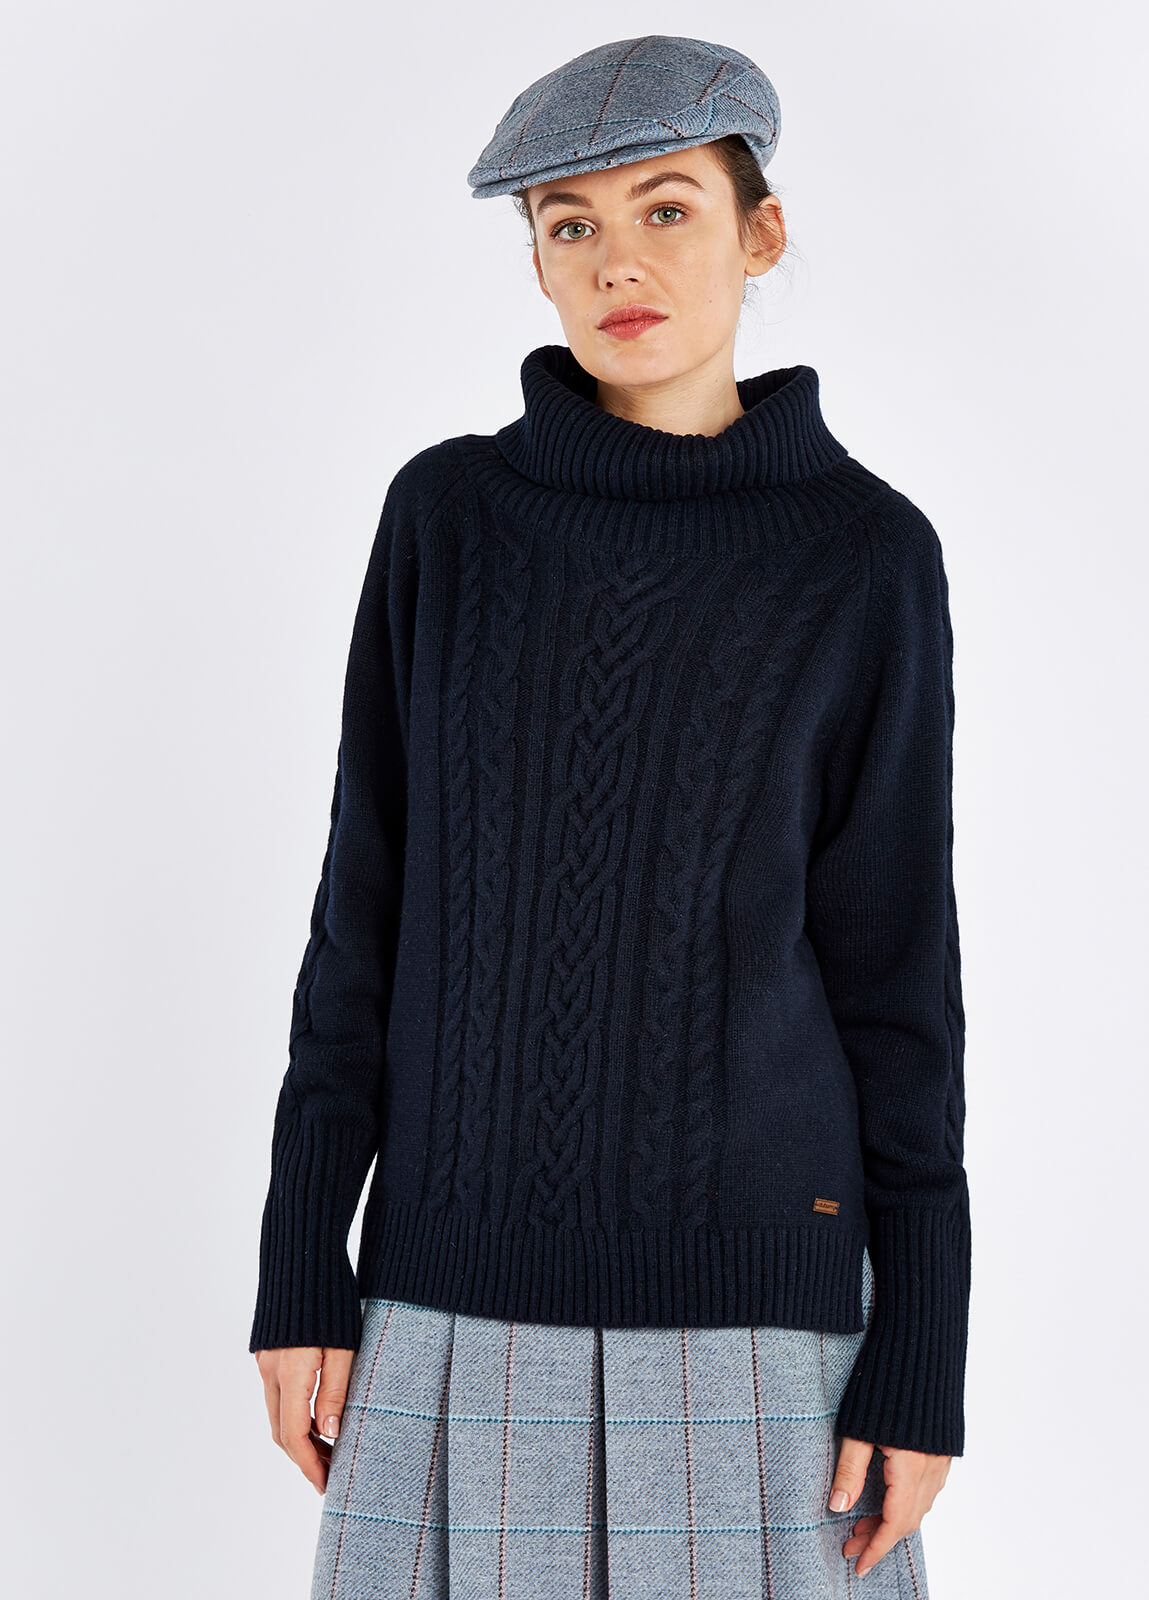 Kennedy Knitted Sweater - Navy